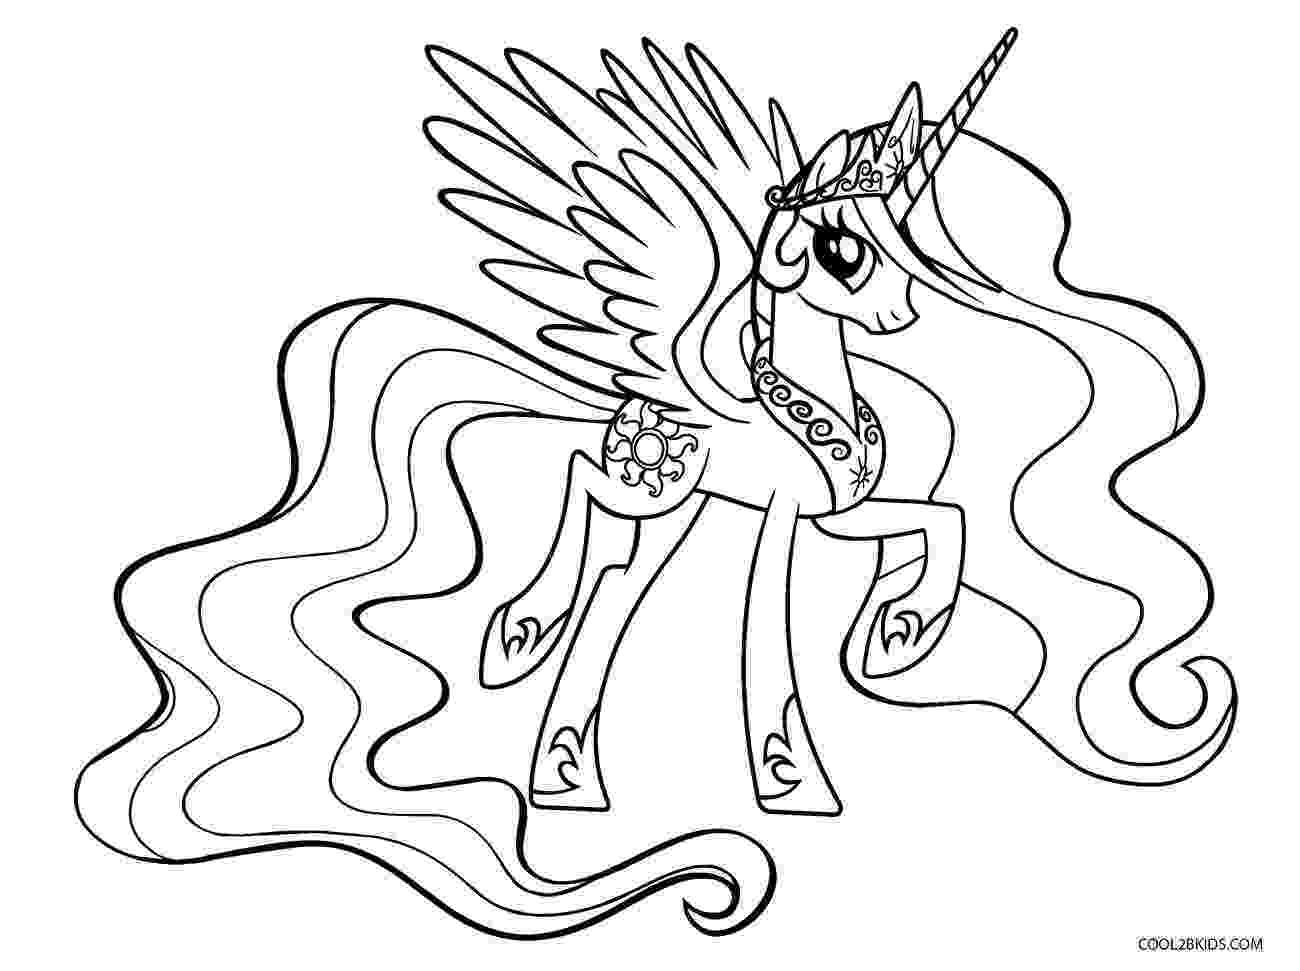 free my little pony coloring pages to print my little pony coloring pages friendship is magic team pony pages free little print to my coloring